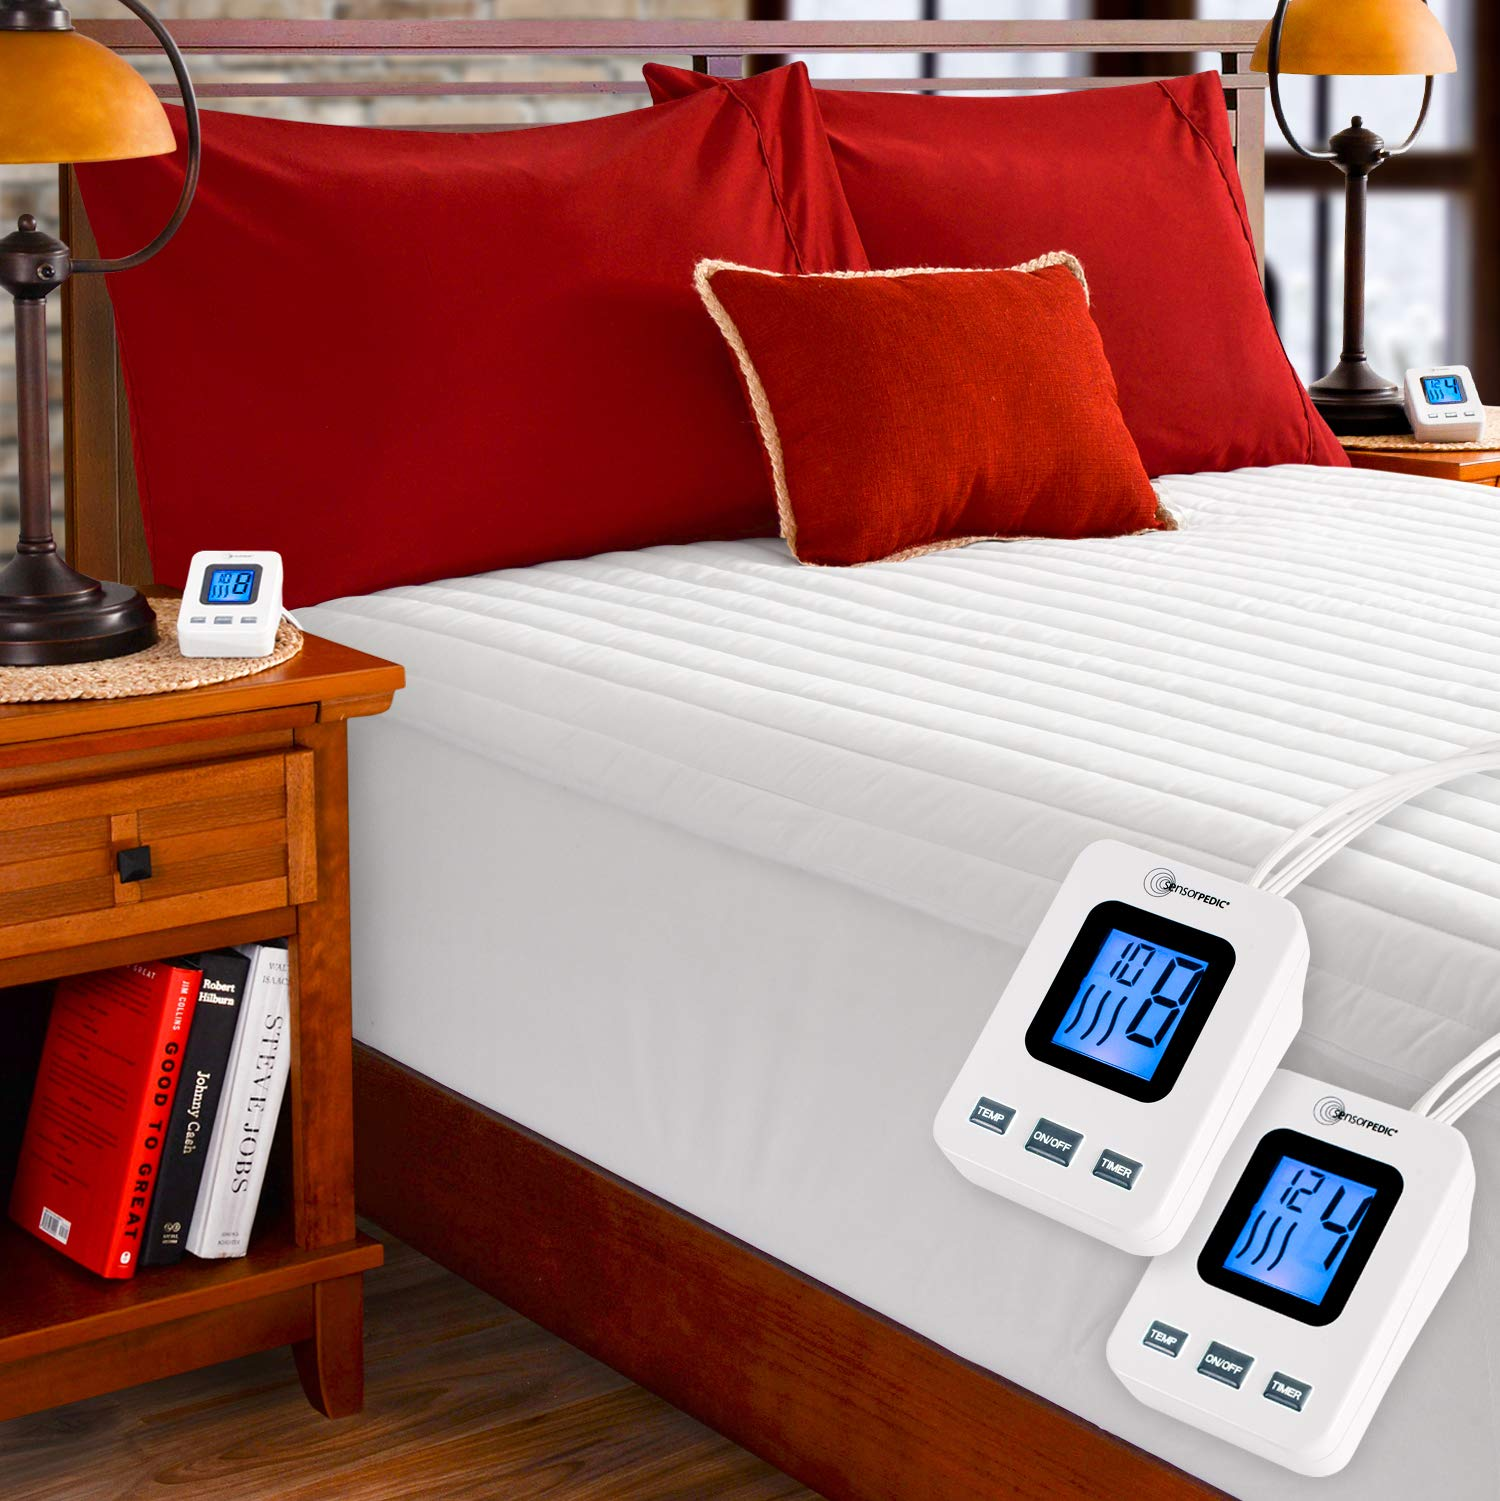 SimplyWarm Electric Mattress Sensor Safe Technology